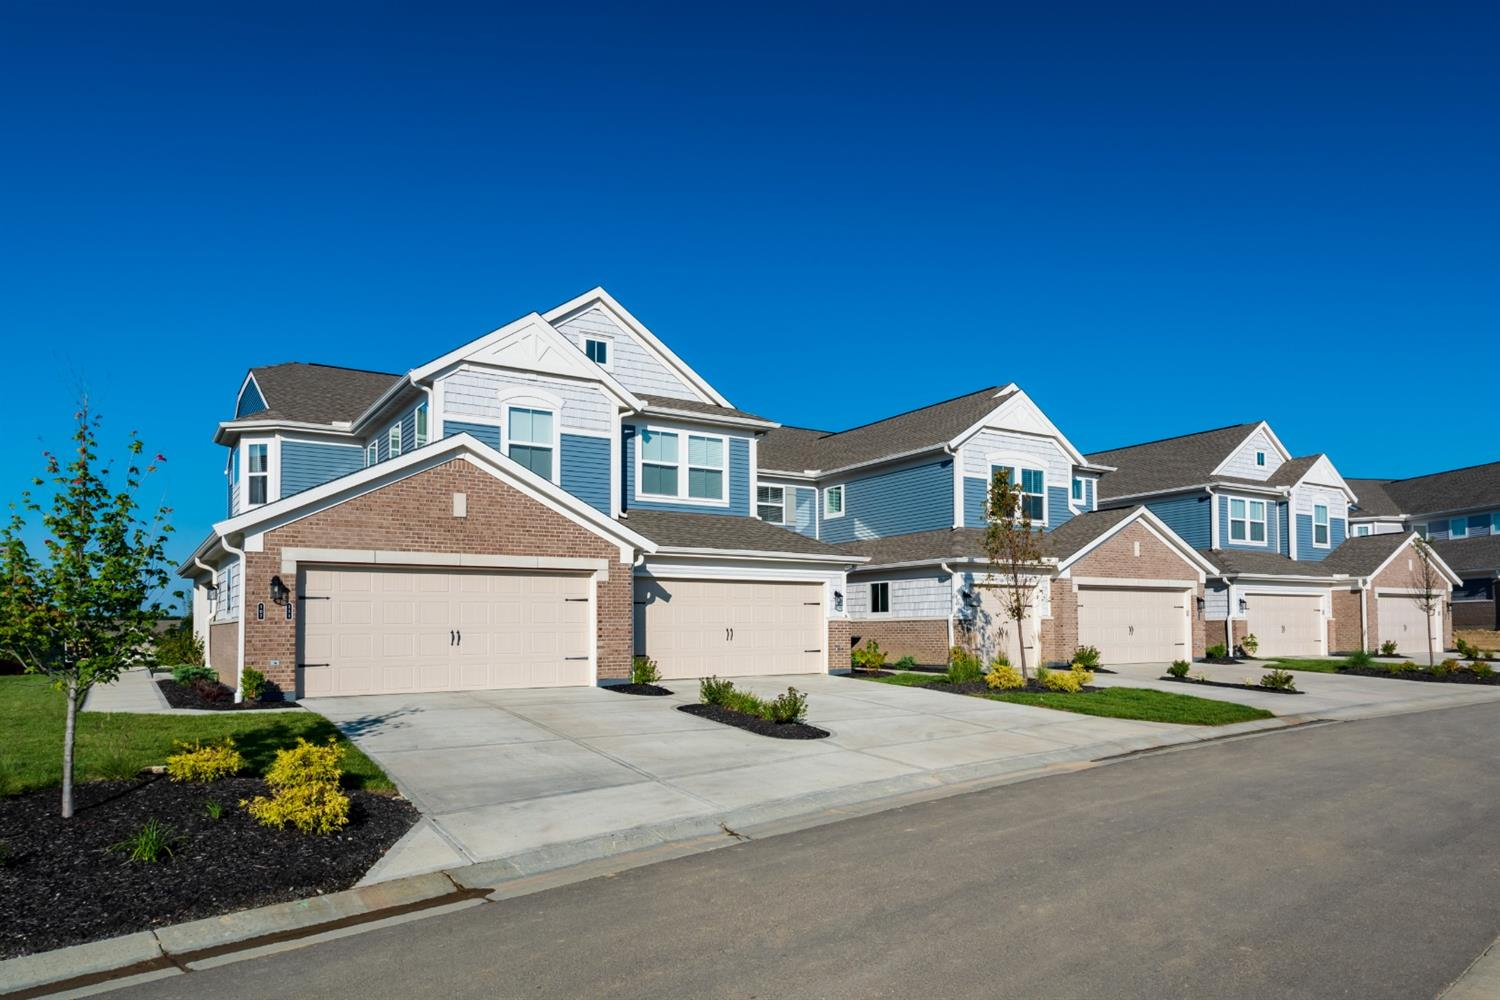 Property for sale at 175 Rippling Brook Lane Unit: 21202, Springboro,  Ohio 45066